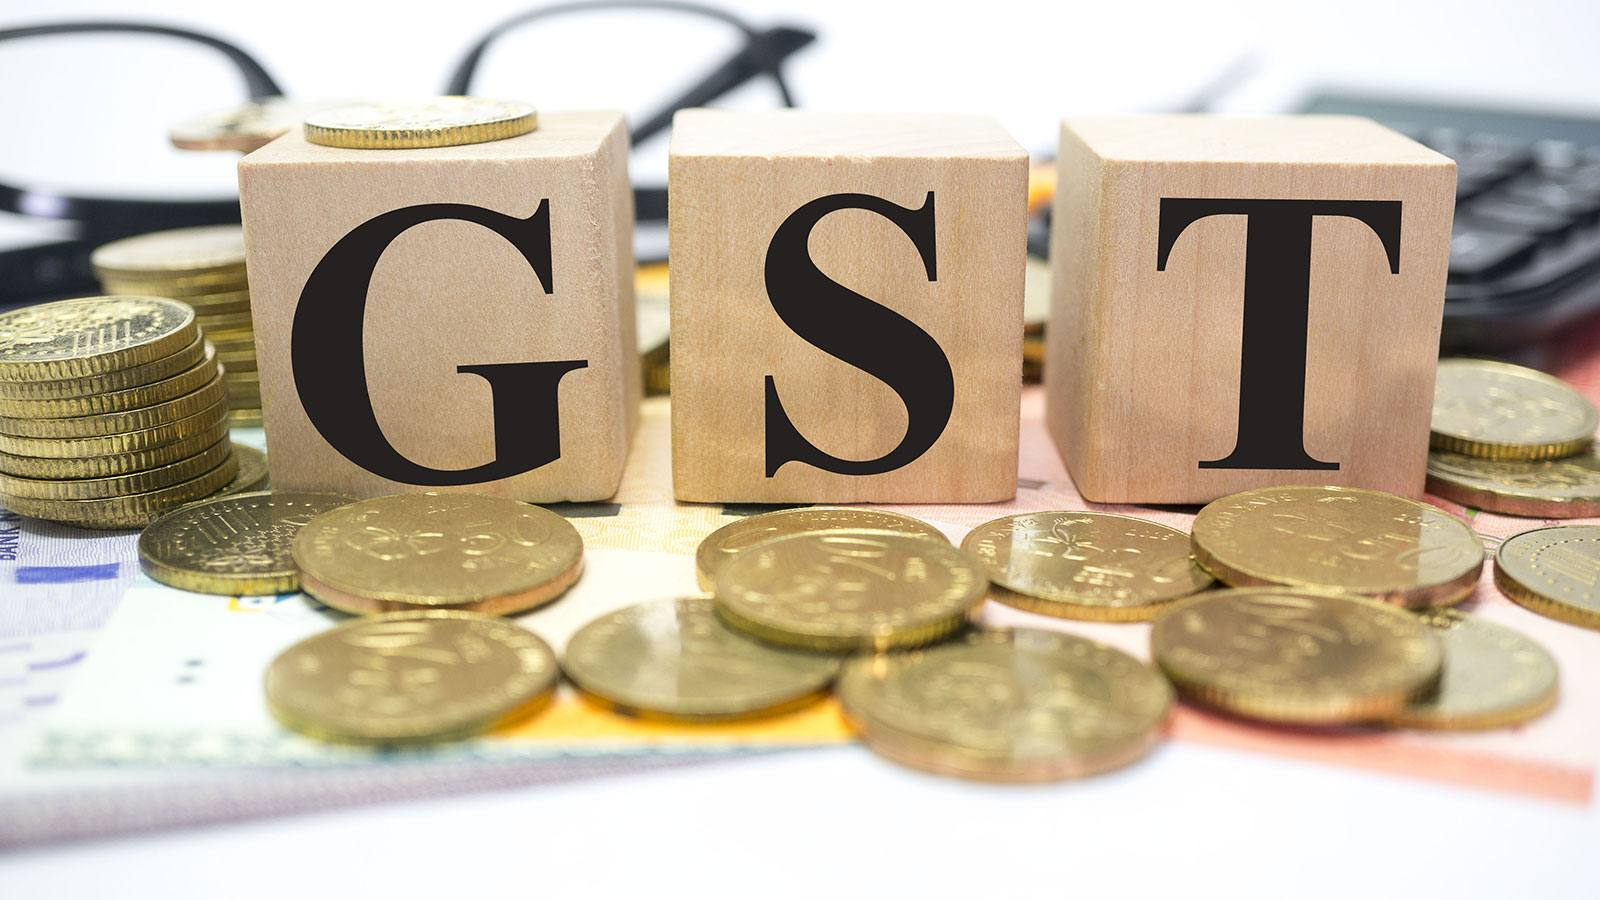 heavy-discount-is-on-offer-in-pre-gst-sale